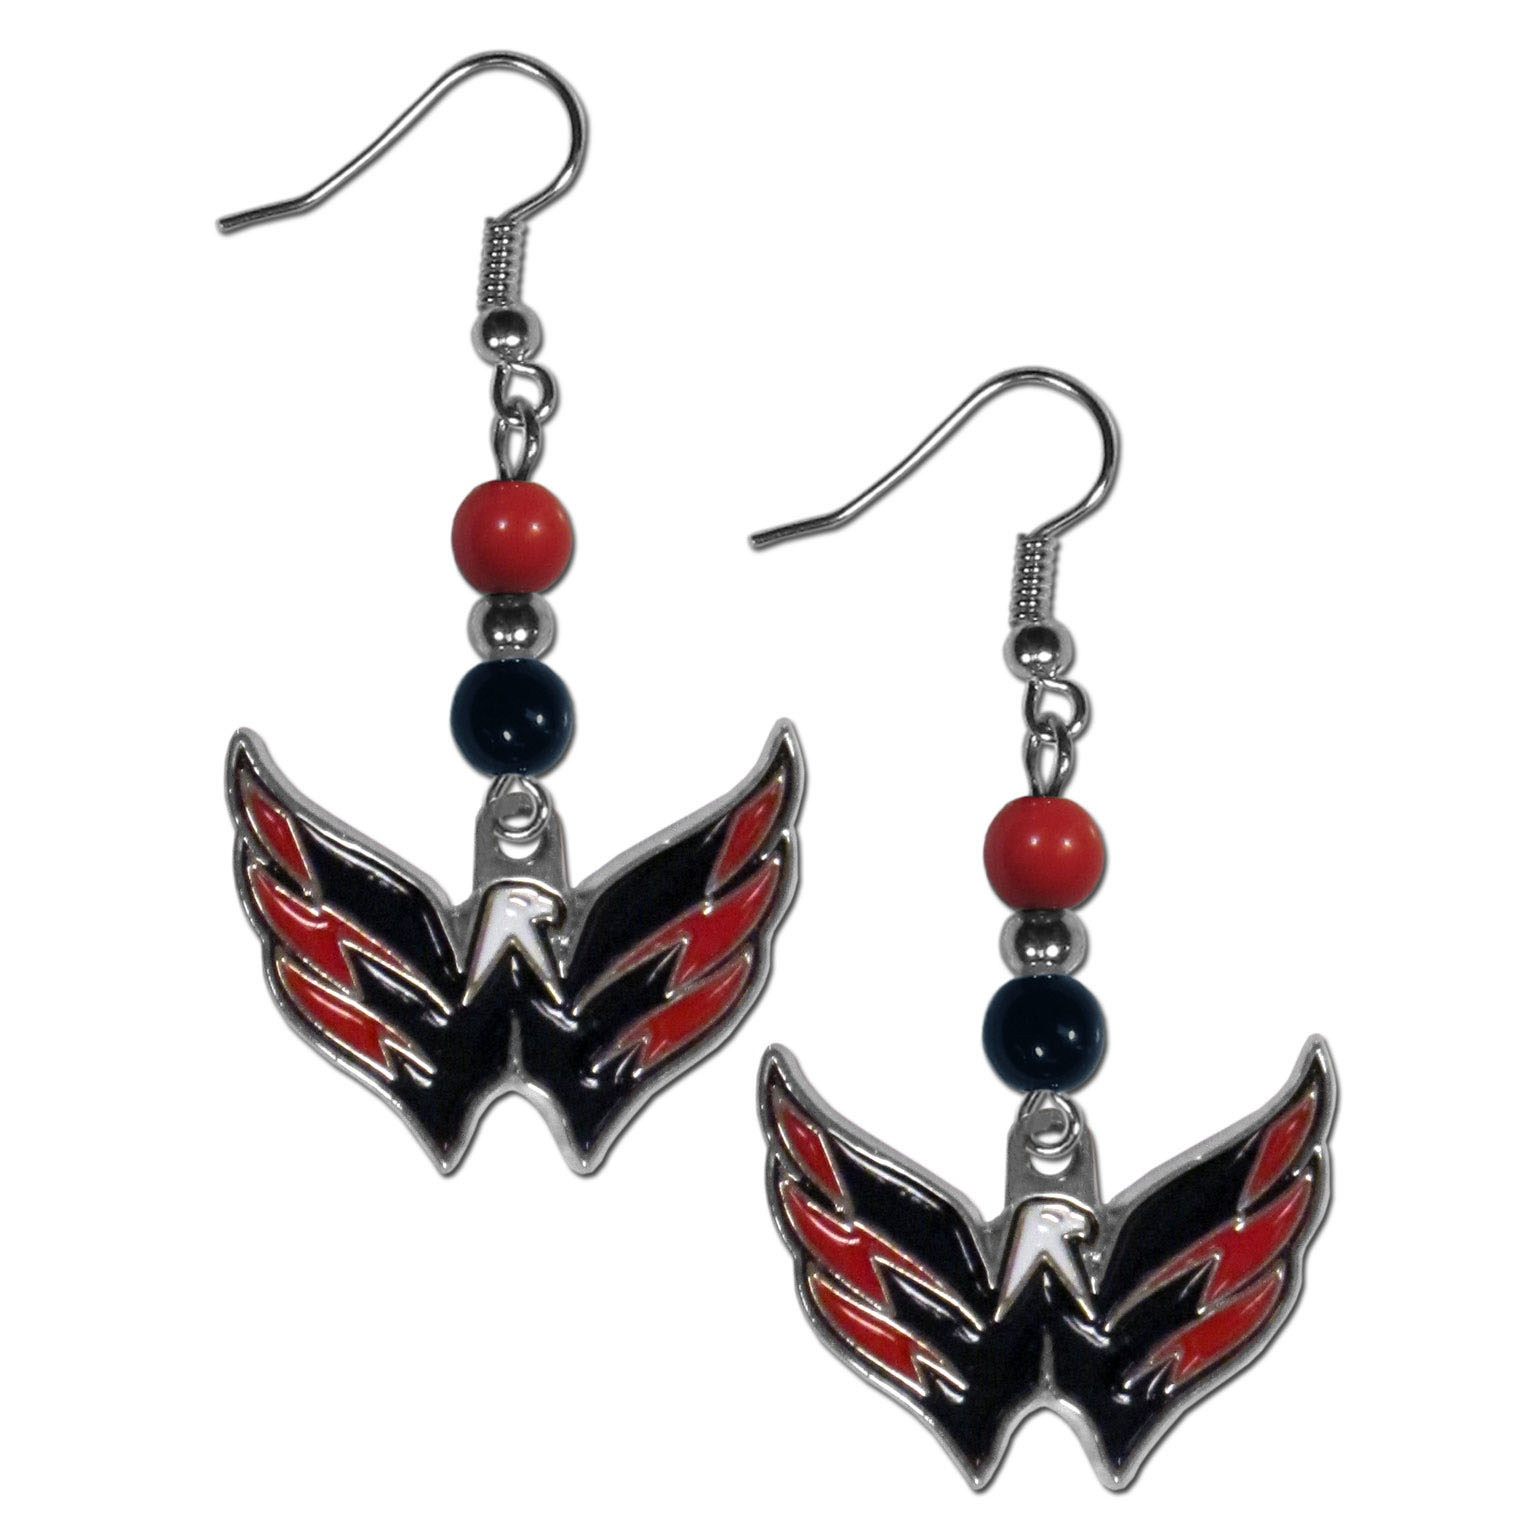 Washington Capitals® Fan Bead Dangle Earrings - Love your team, show it off with our Washington Capitals® bead dangle earrings! These super cute earrings hang approximately 2 inches and features 2 team colored beads and a high polish team charm. A must have for game day!